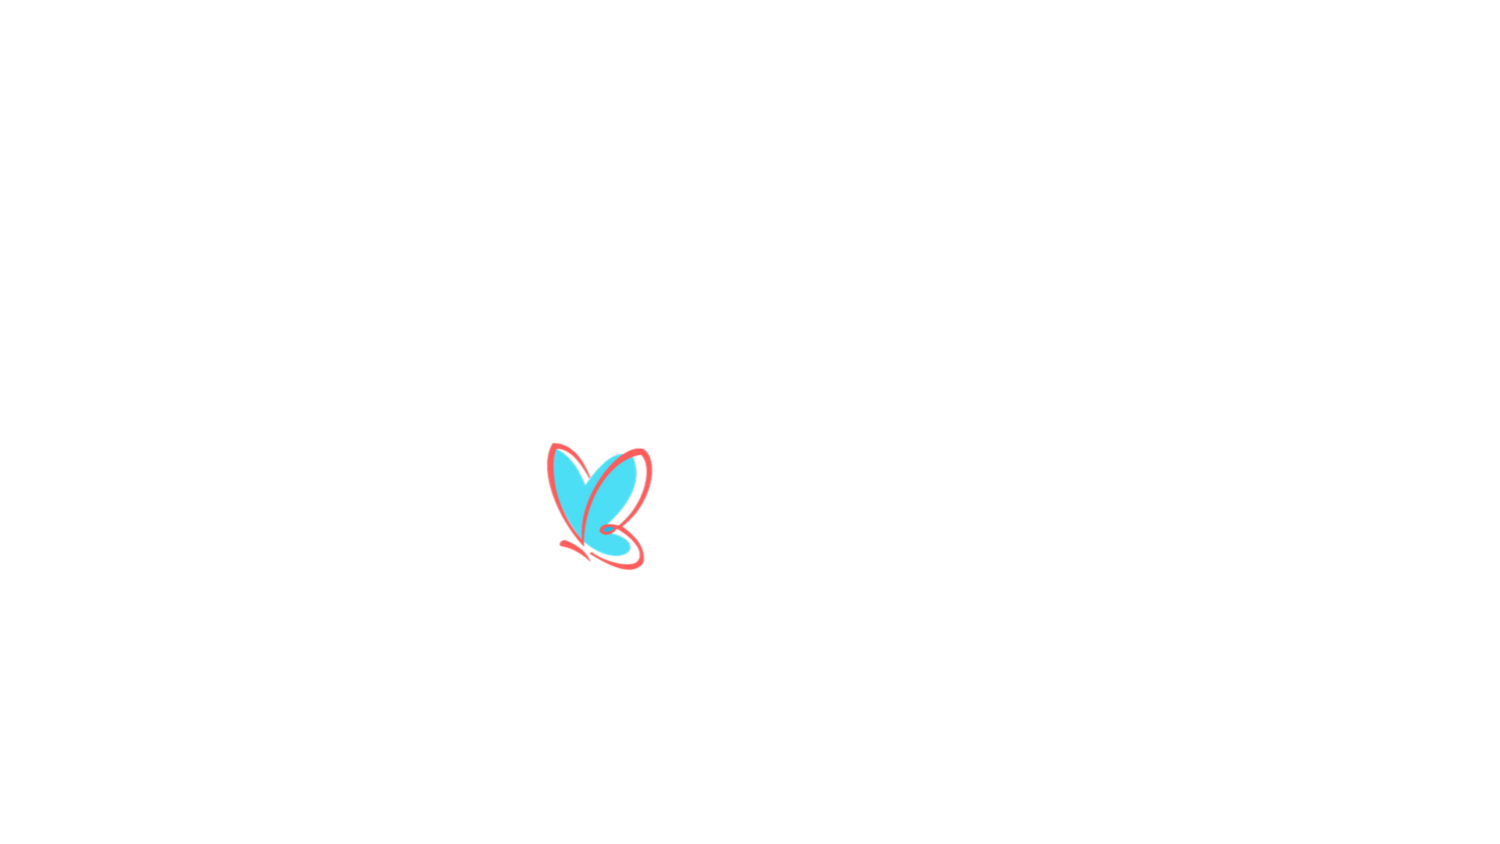 Goodbye Workplace. Hello Family!